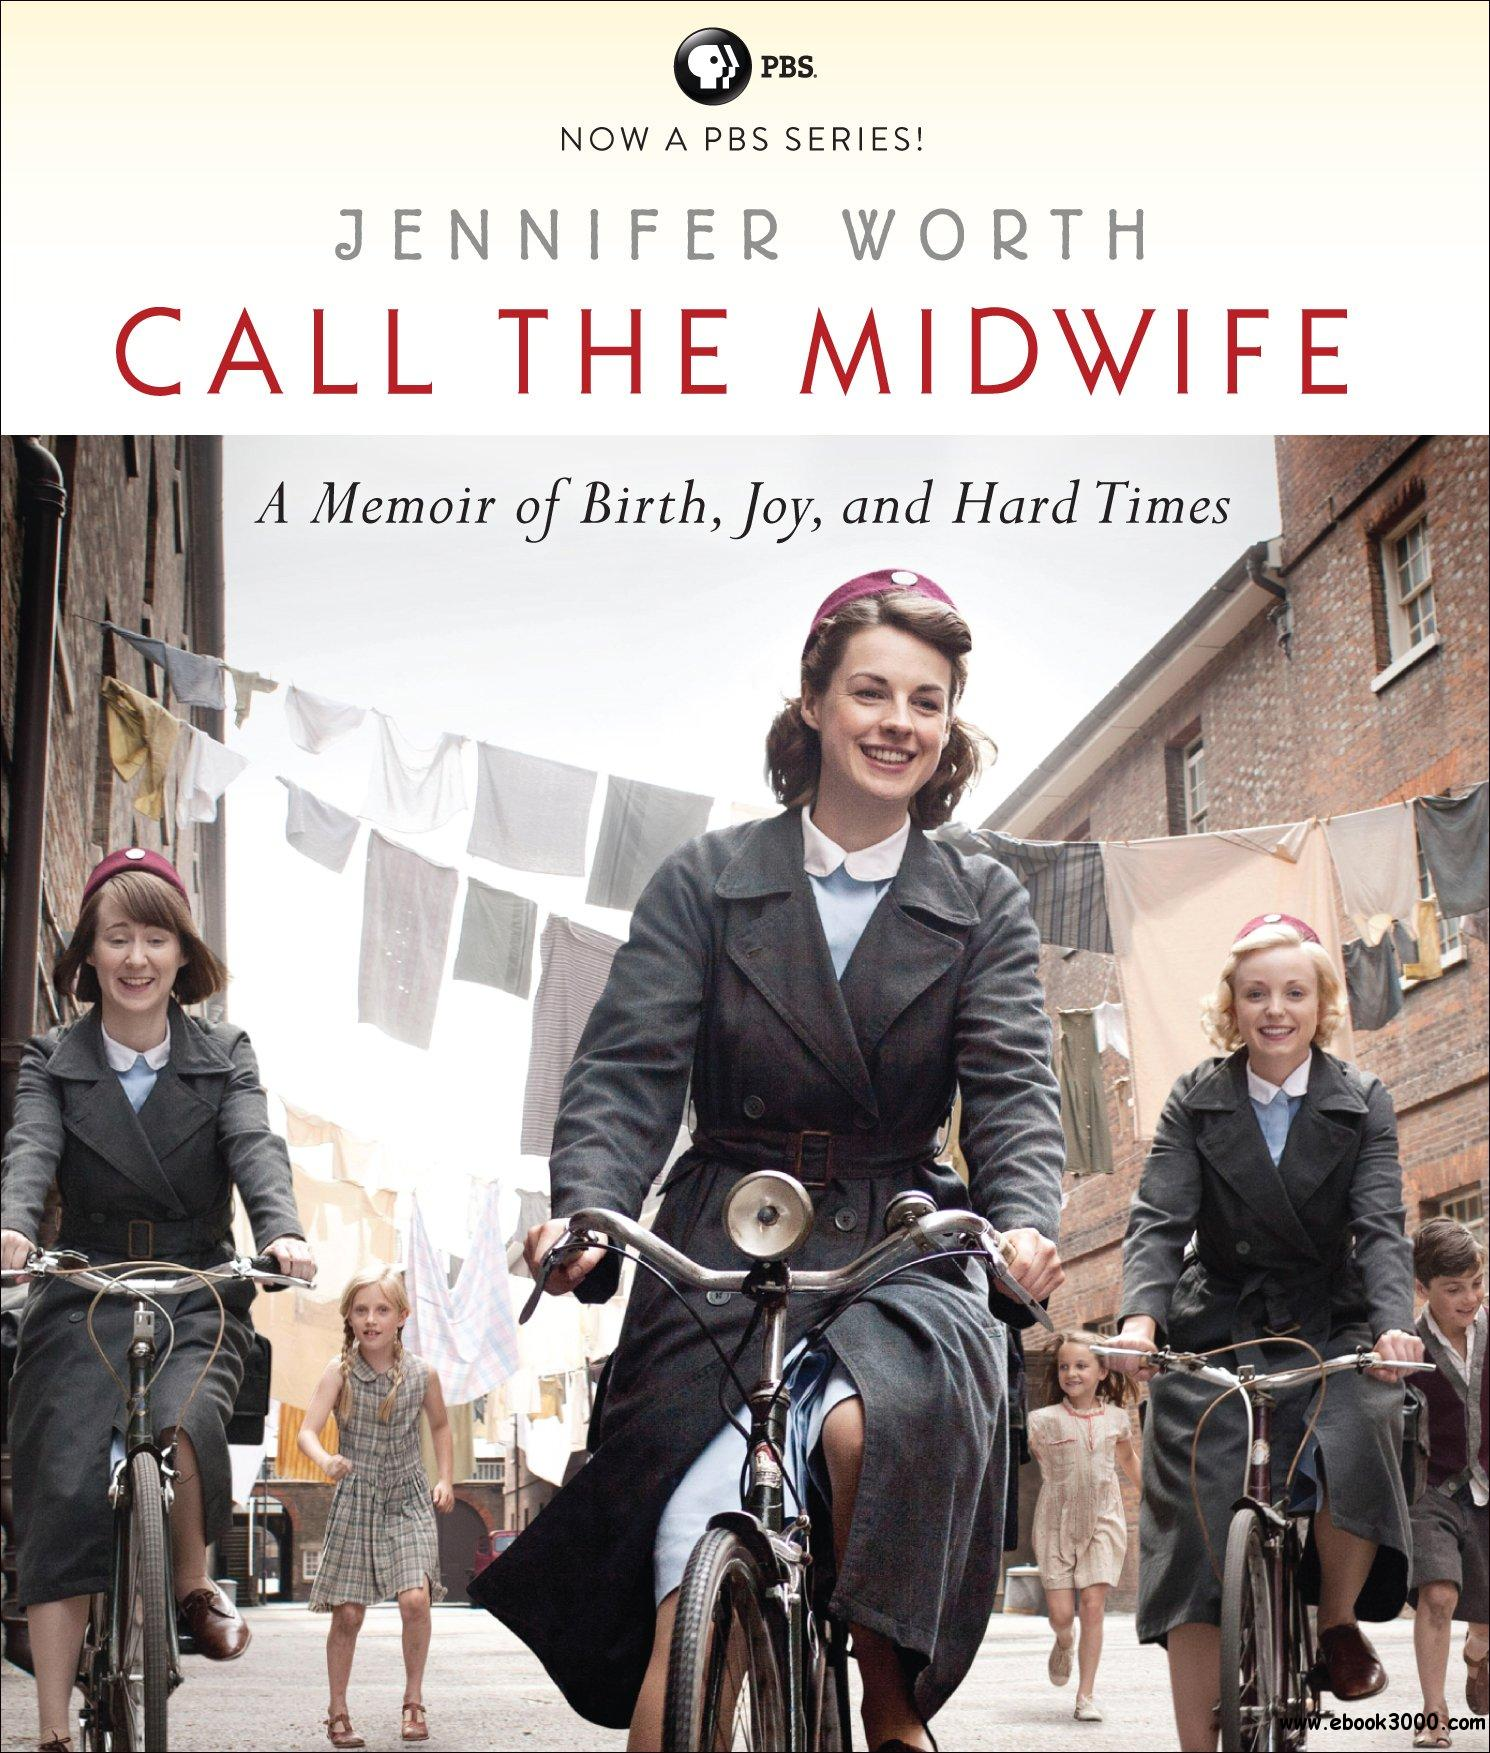 Call the Midwife: A Memoir of Birth, Joy, and Hard Times download dree